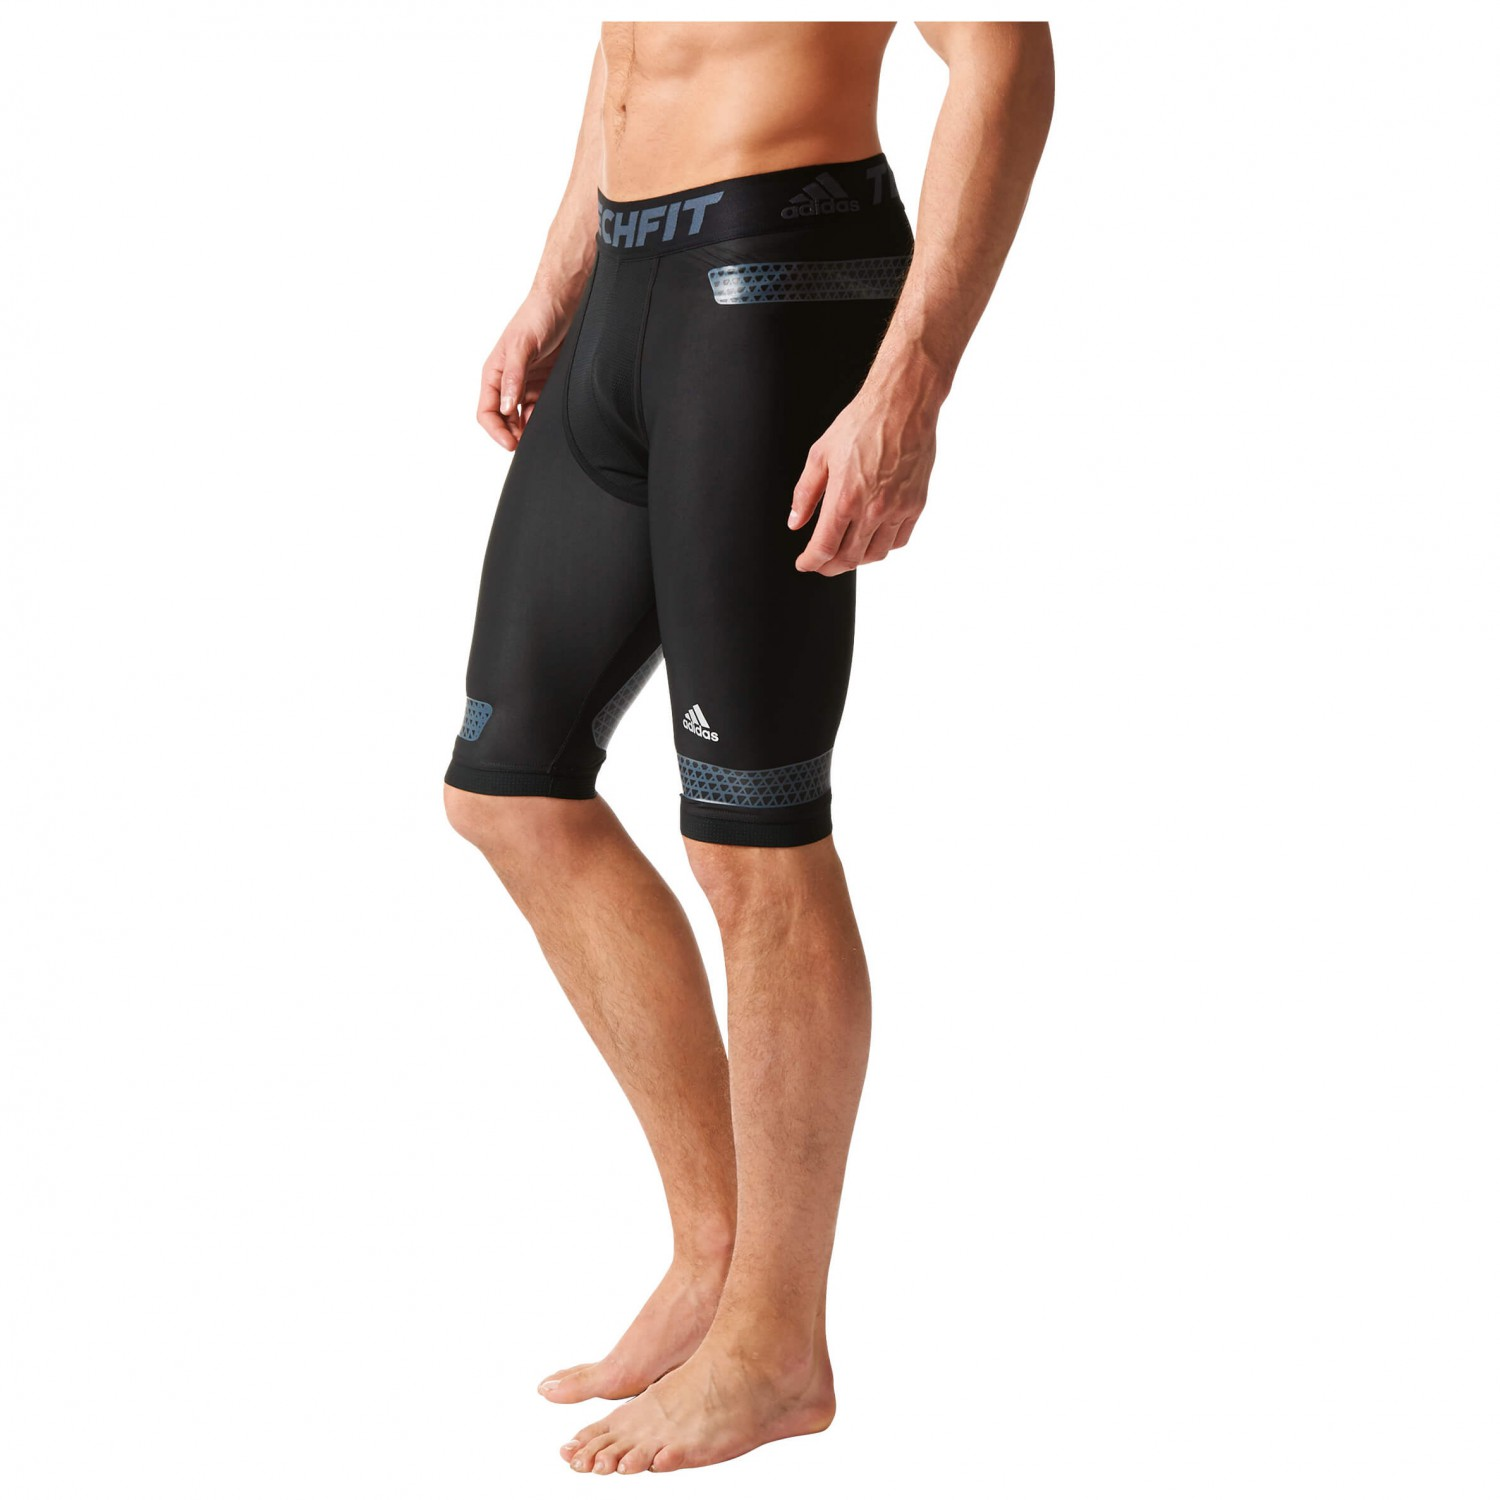 Adidas Techfit Power Short Tights Men's